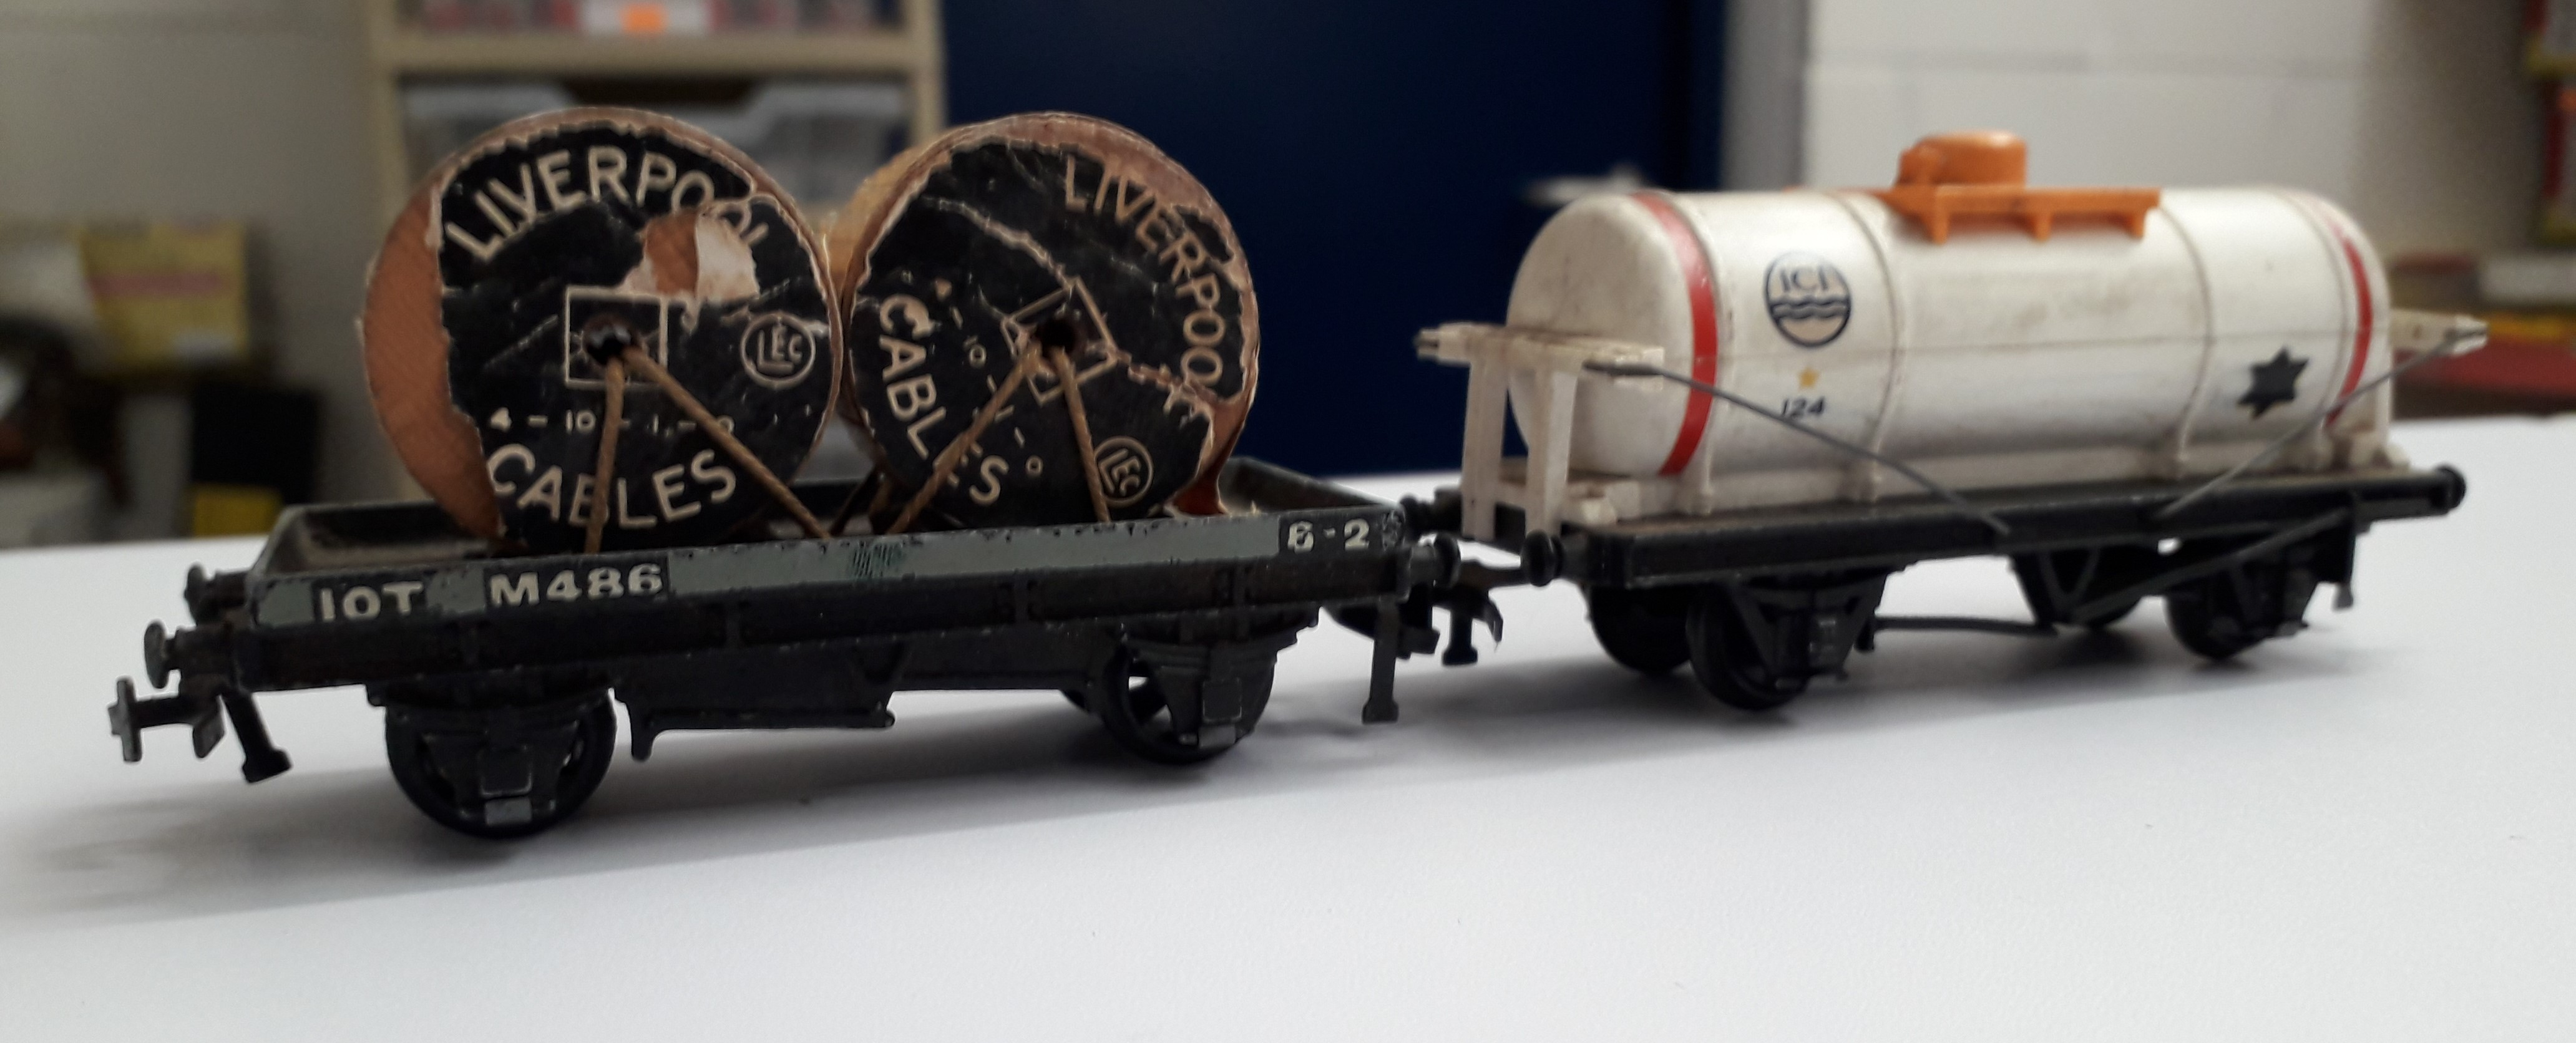 2x Hornby Dublo Wagons Cat No 4675 ICI Chlorine Wagon 124 White End Supports & Cat No 32086 D1 Low-Sided Wagon BR M486 Grey With Liverpool Cables Wooden Drum load